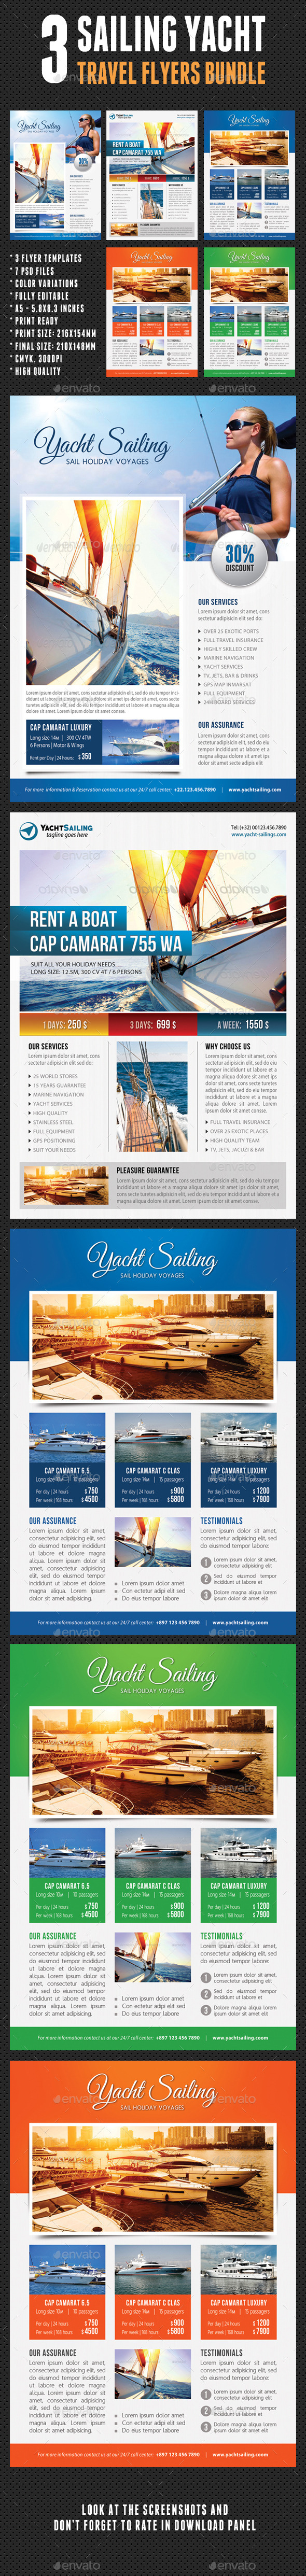 GraphicRiver 3 in 1 Sailing Yacht Travel Flyers Bundle V02 11196790